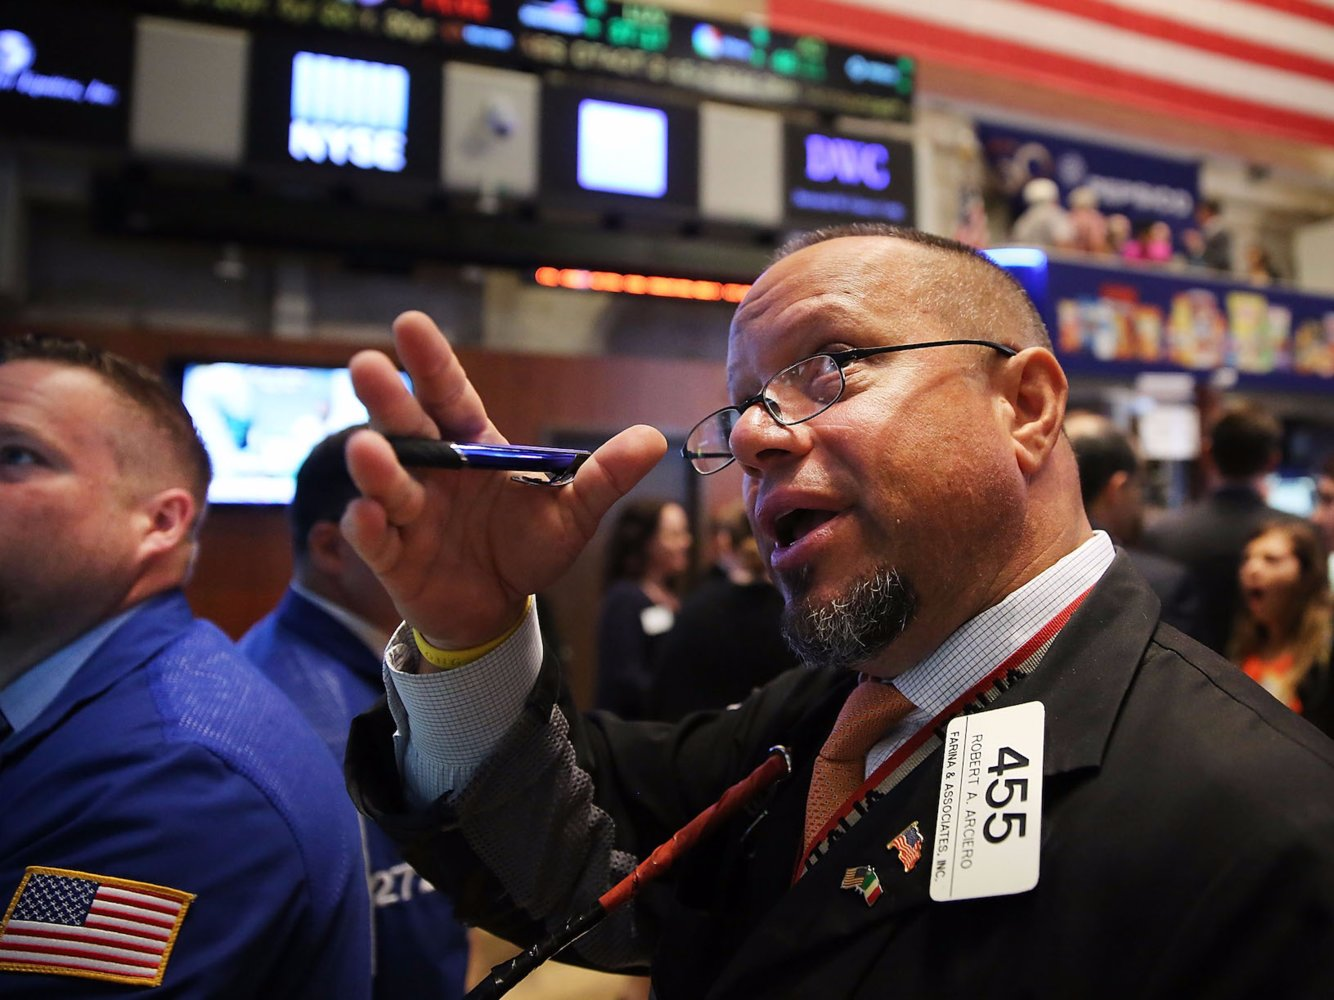 A Wall Street strategist has doubled down on his warning that the 'biggest bubble in history' will burst. Here are the 12 stocks he says investors should buy to weather the storm.